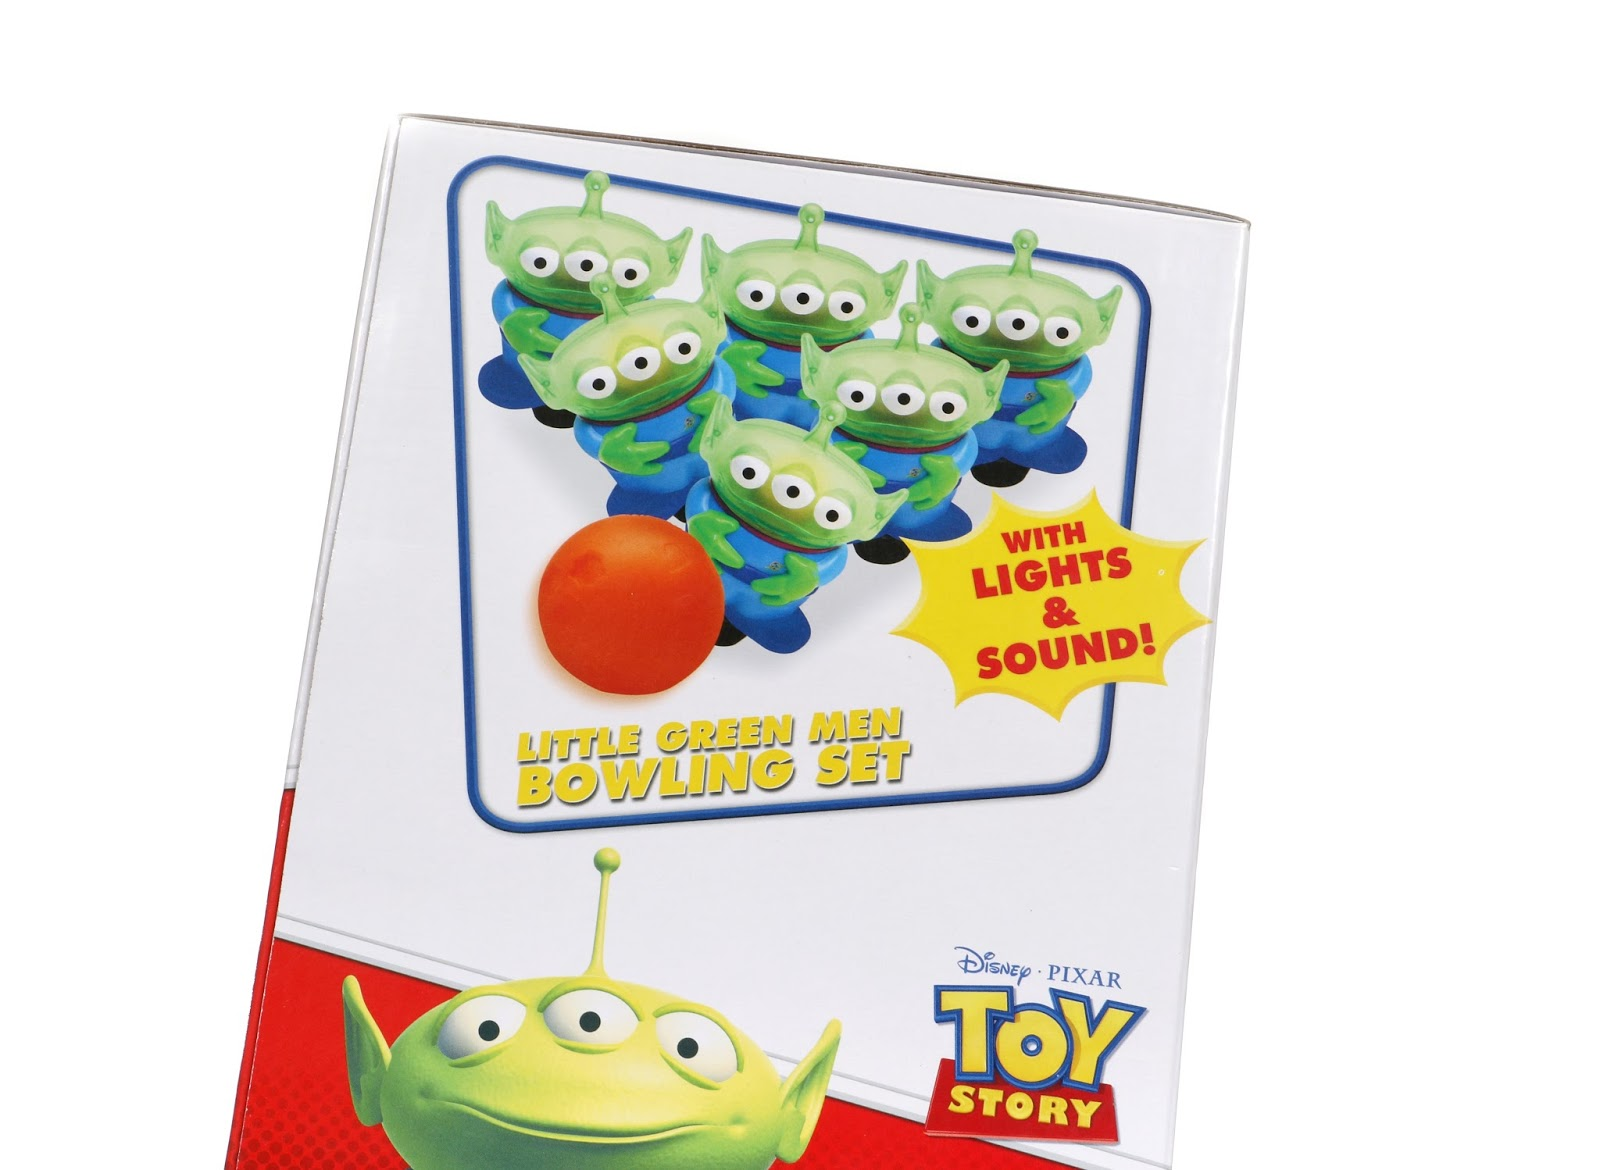 toy story disney parks alien bowling set